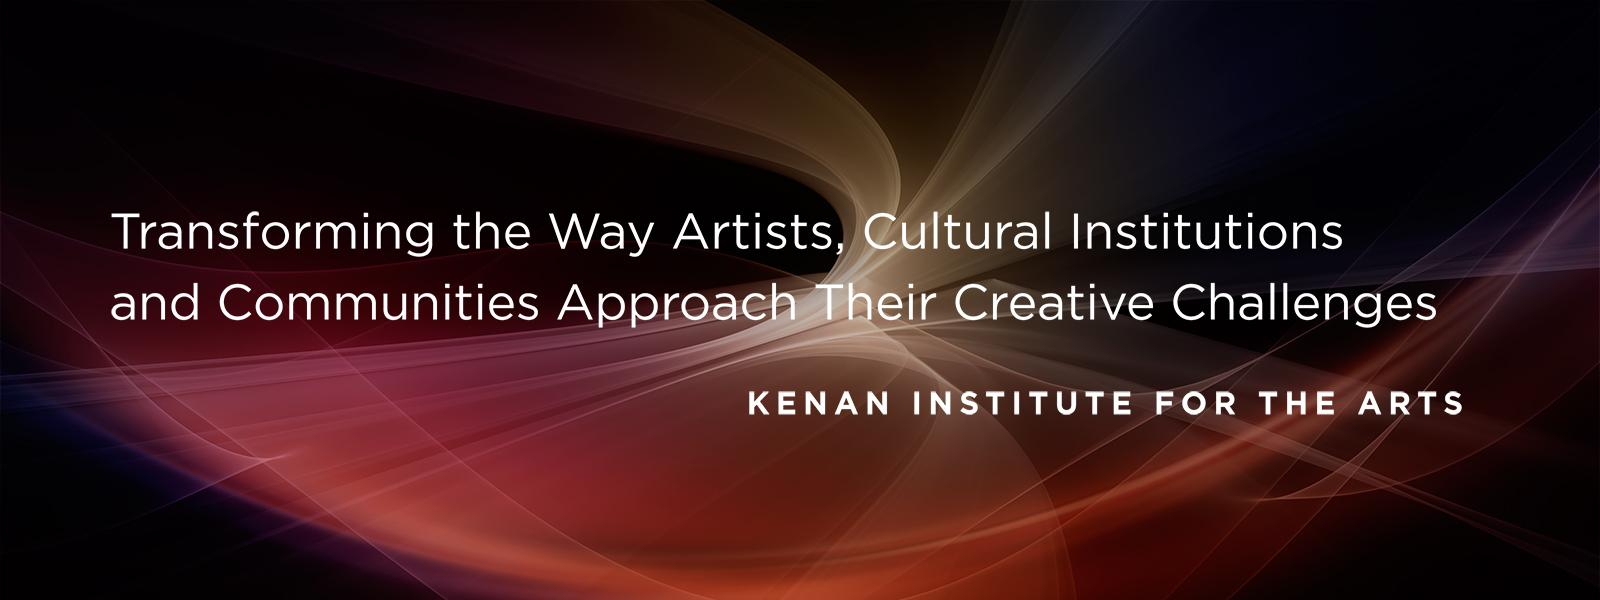 Kenan Institute for the Arts